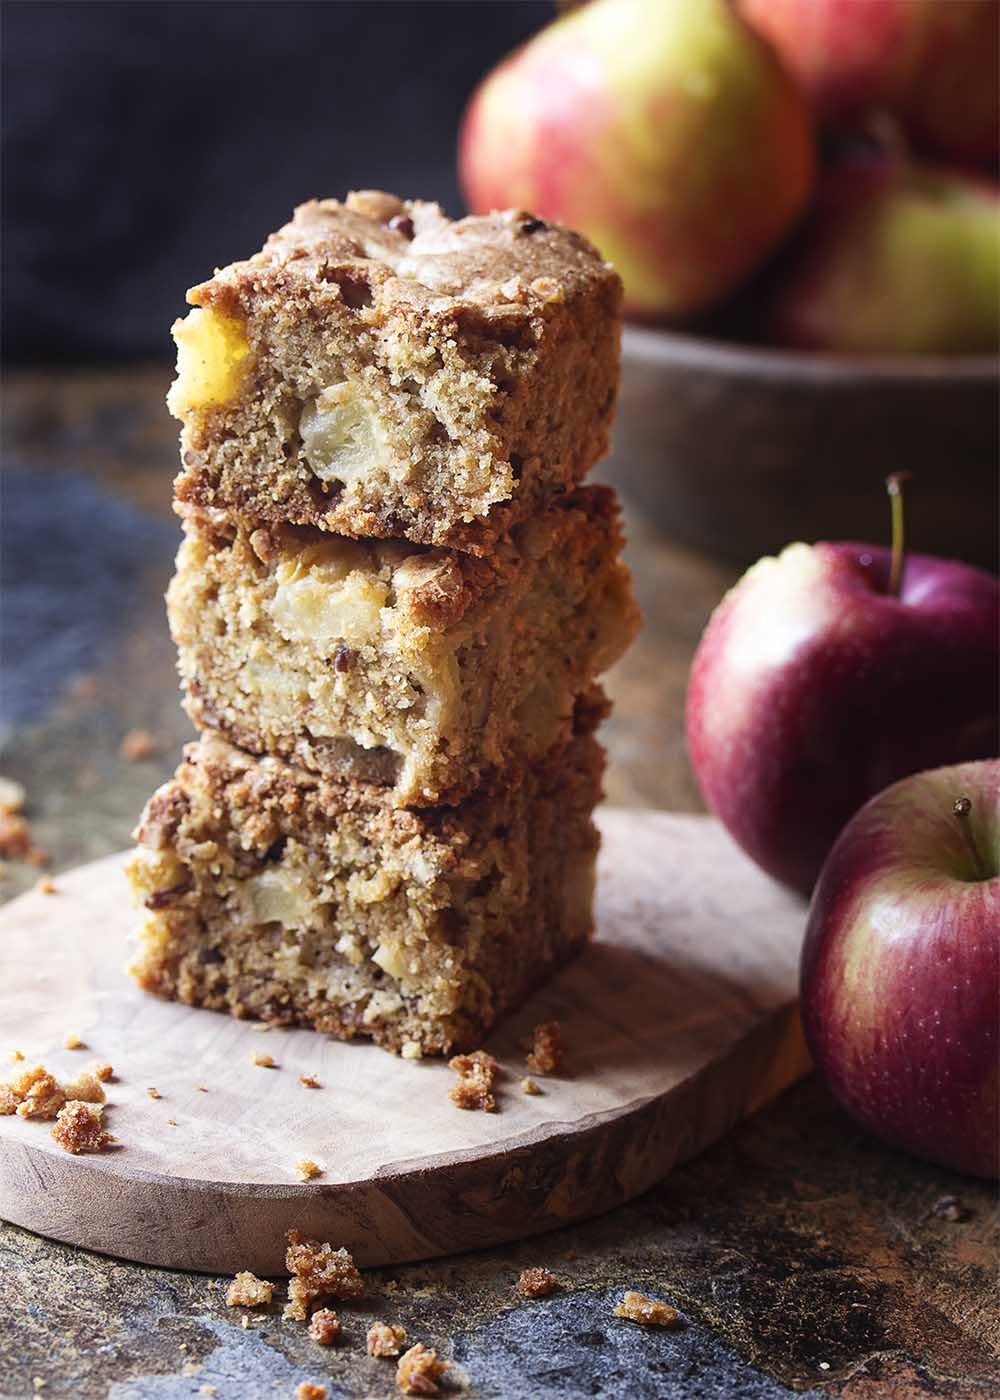 A stack of pieces of moist and delicious fresh apple cake on a wooden board.